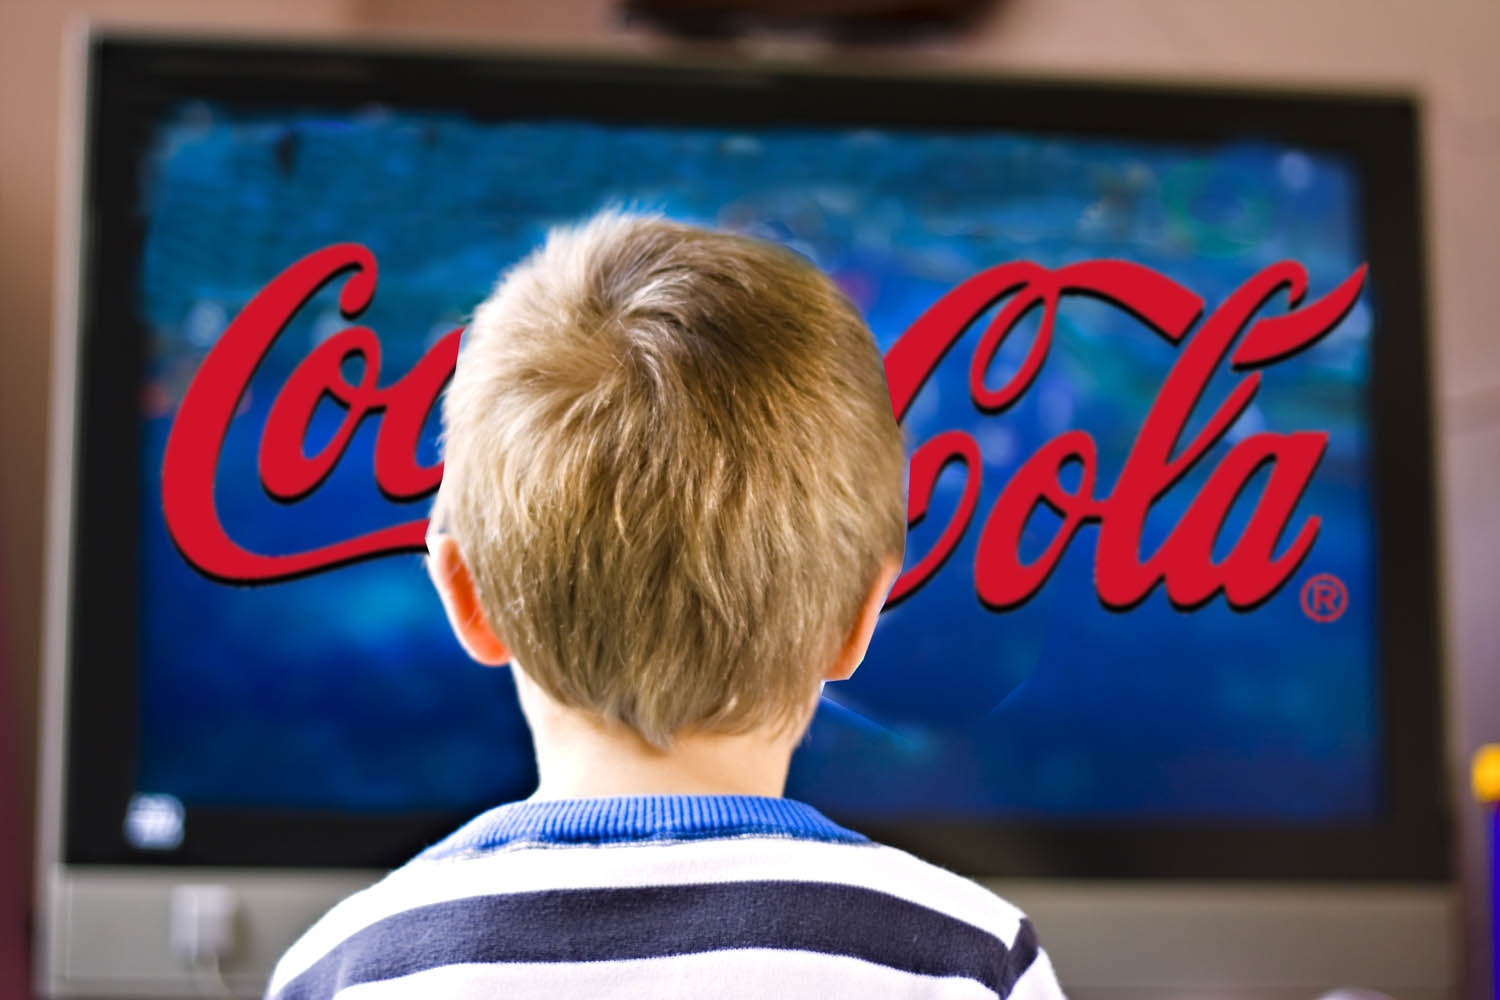 the power of television advertising For one thing, i believe television advertising has a greater power to engage its audience than print and radio media have while print appeals only to the sense of sight and radio only to hearing, television appeals to both sight and hearing simultaneously.